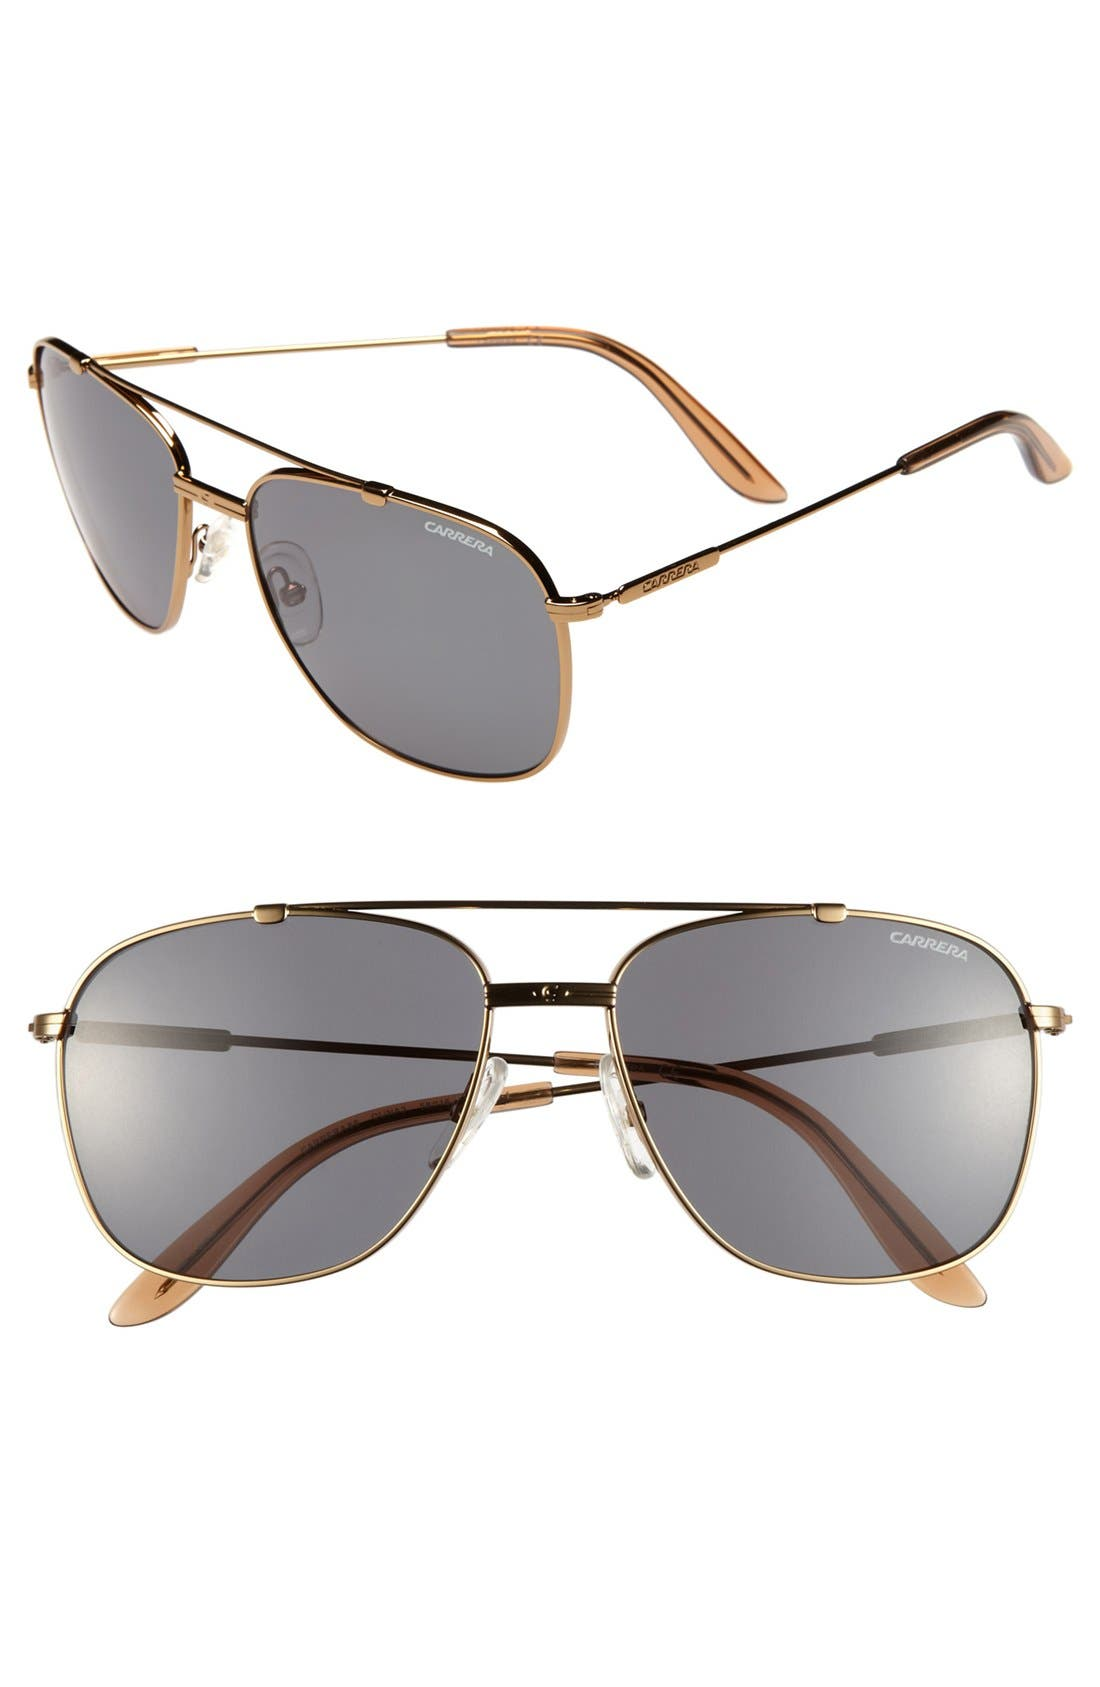 Alternate Image 1 Selected - Carrera Eyewear 58mm Sunglasses